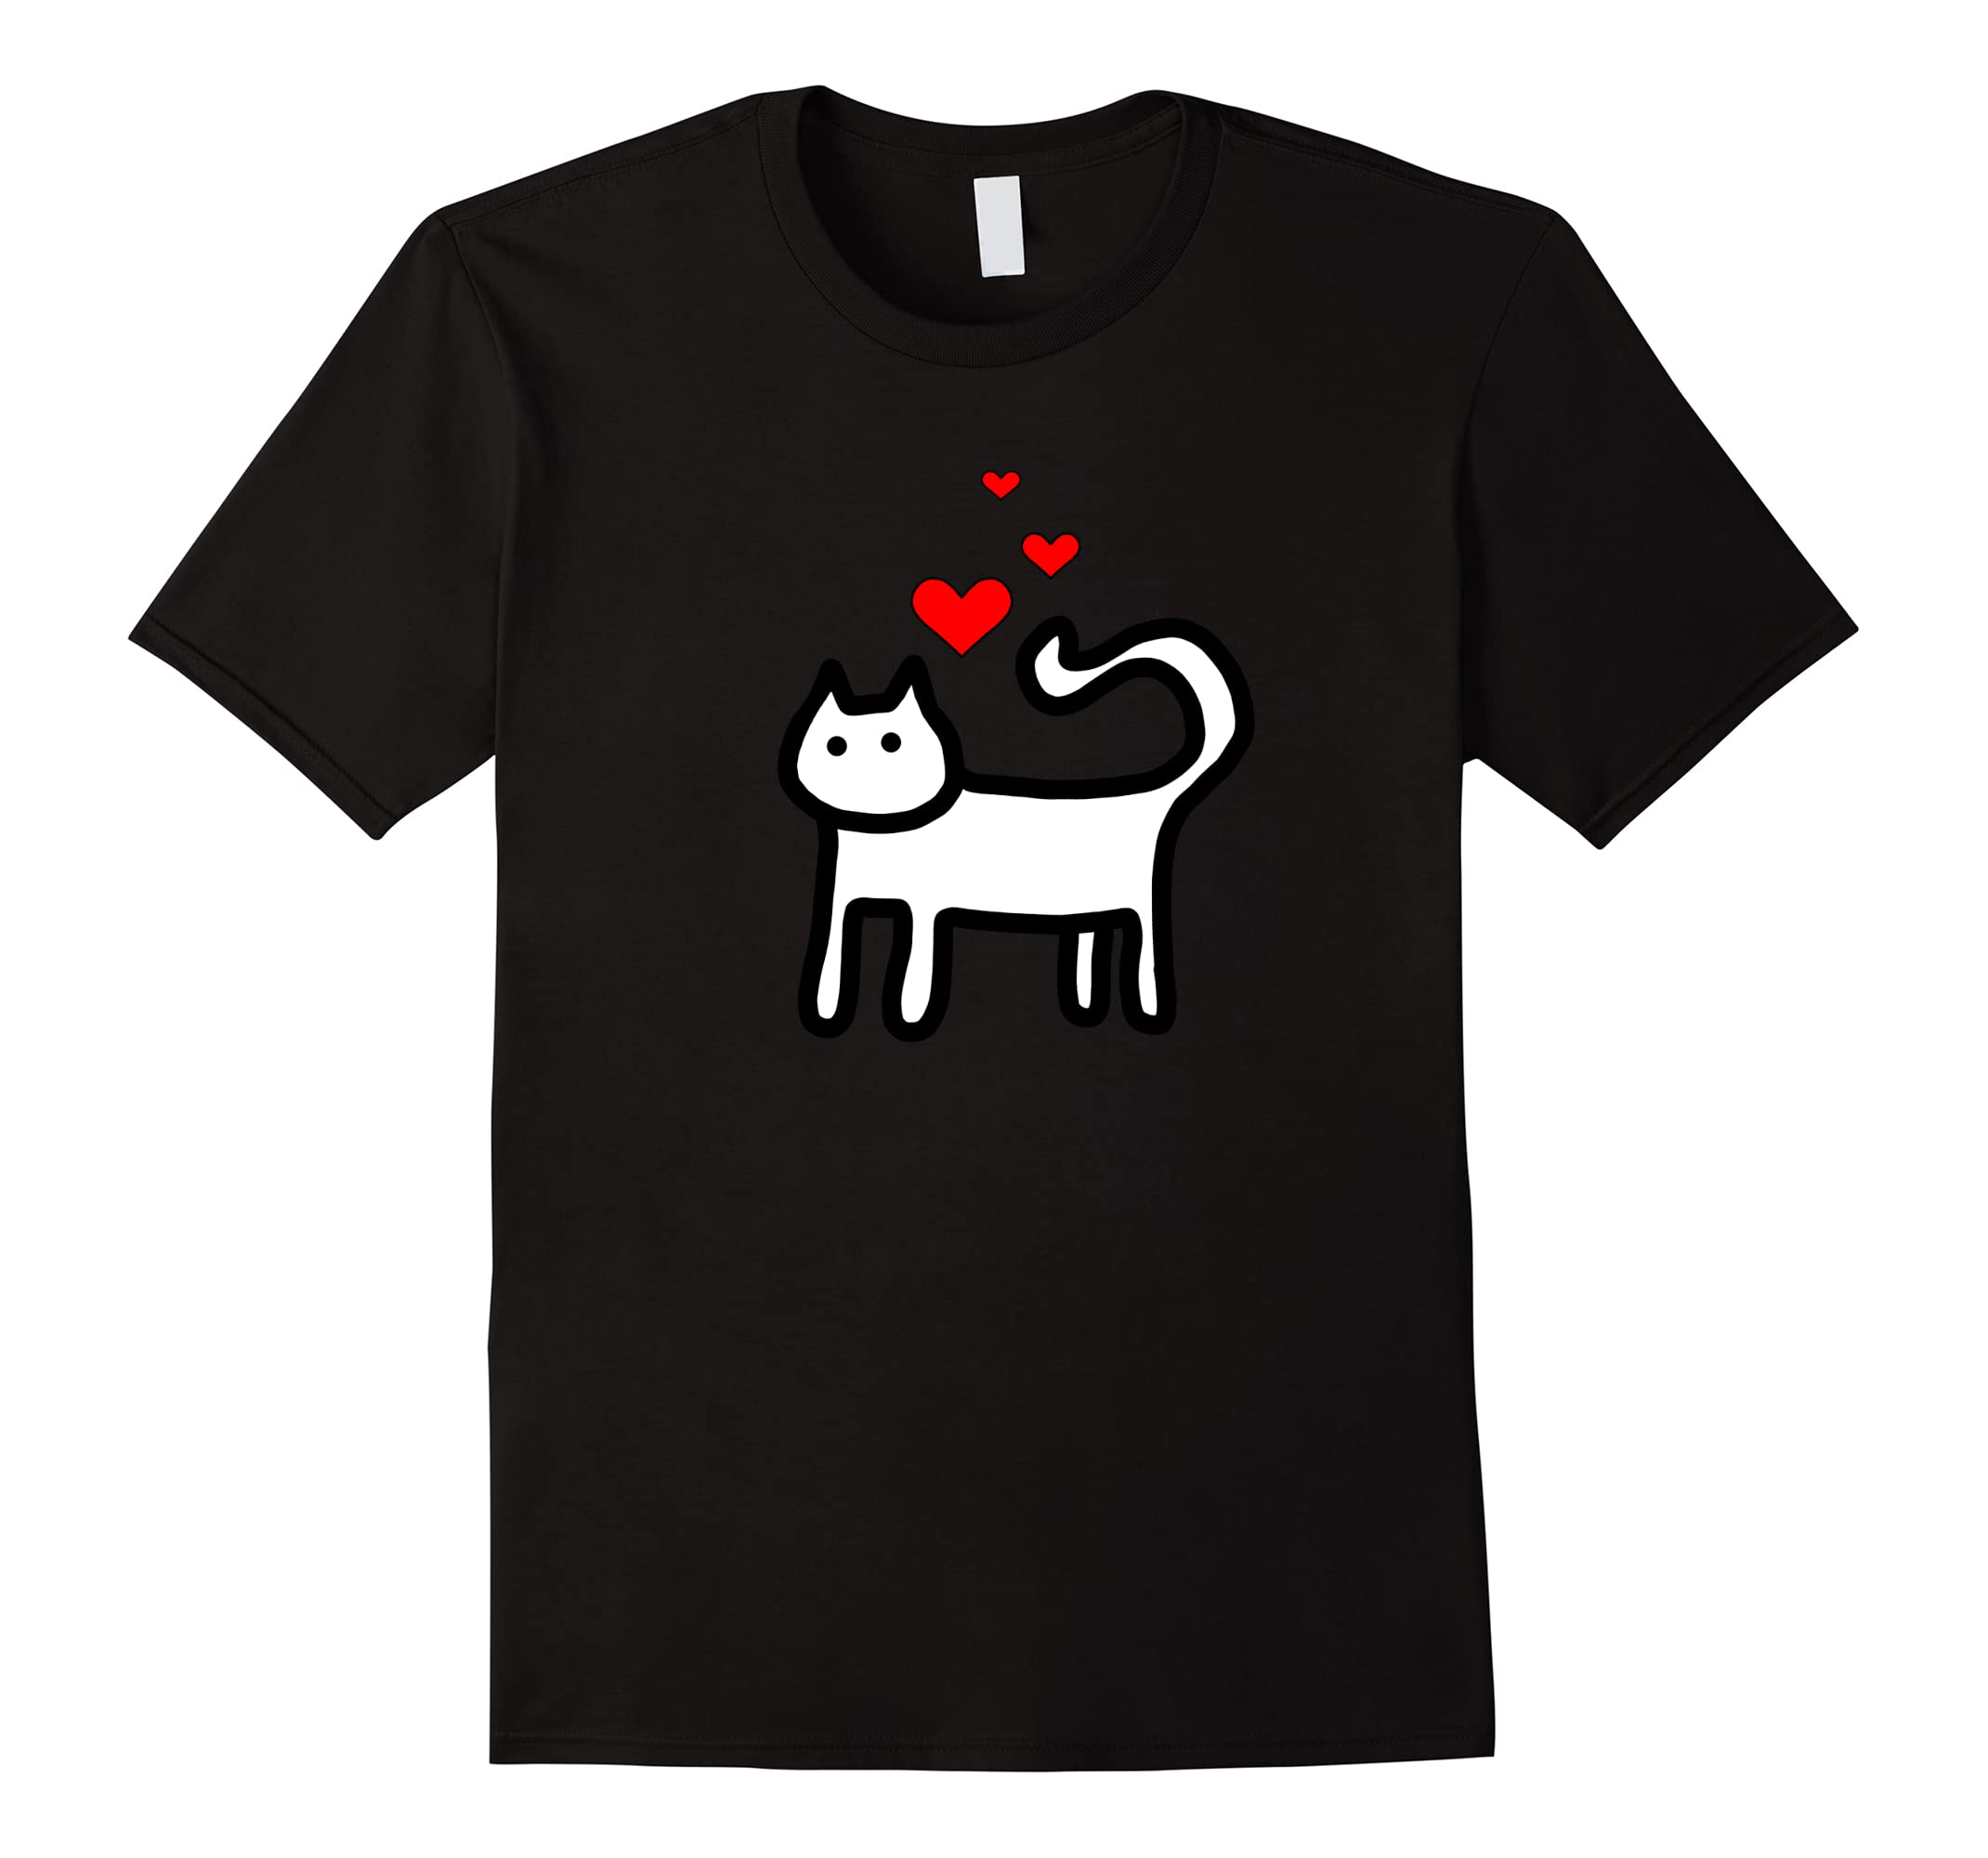 Valentines Day Cat Shirt With Hearts For Girls Kids Family Ah My